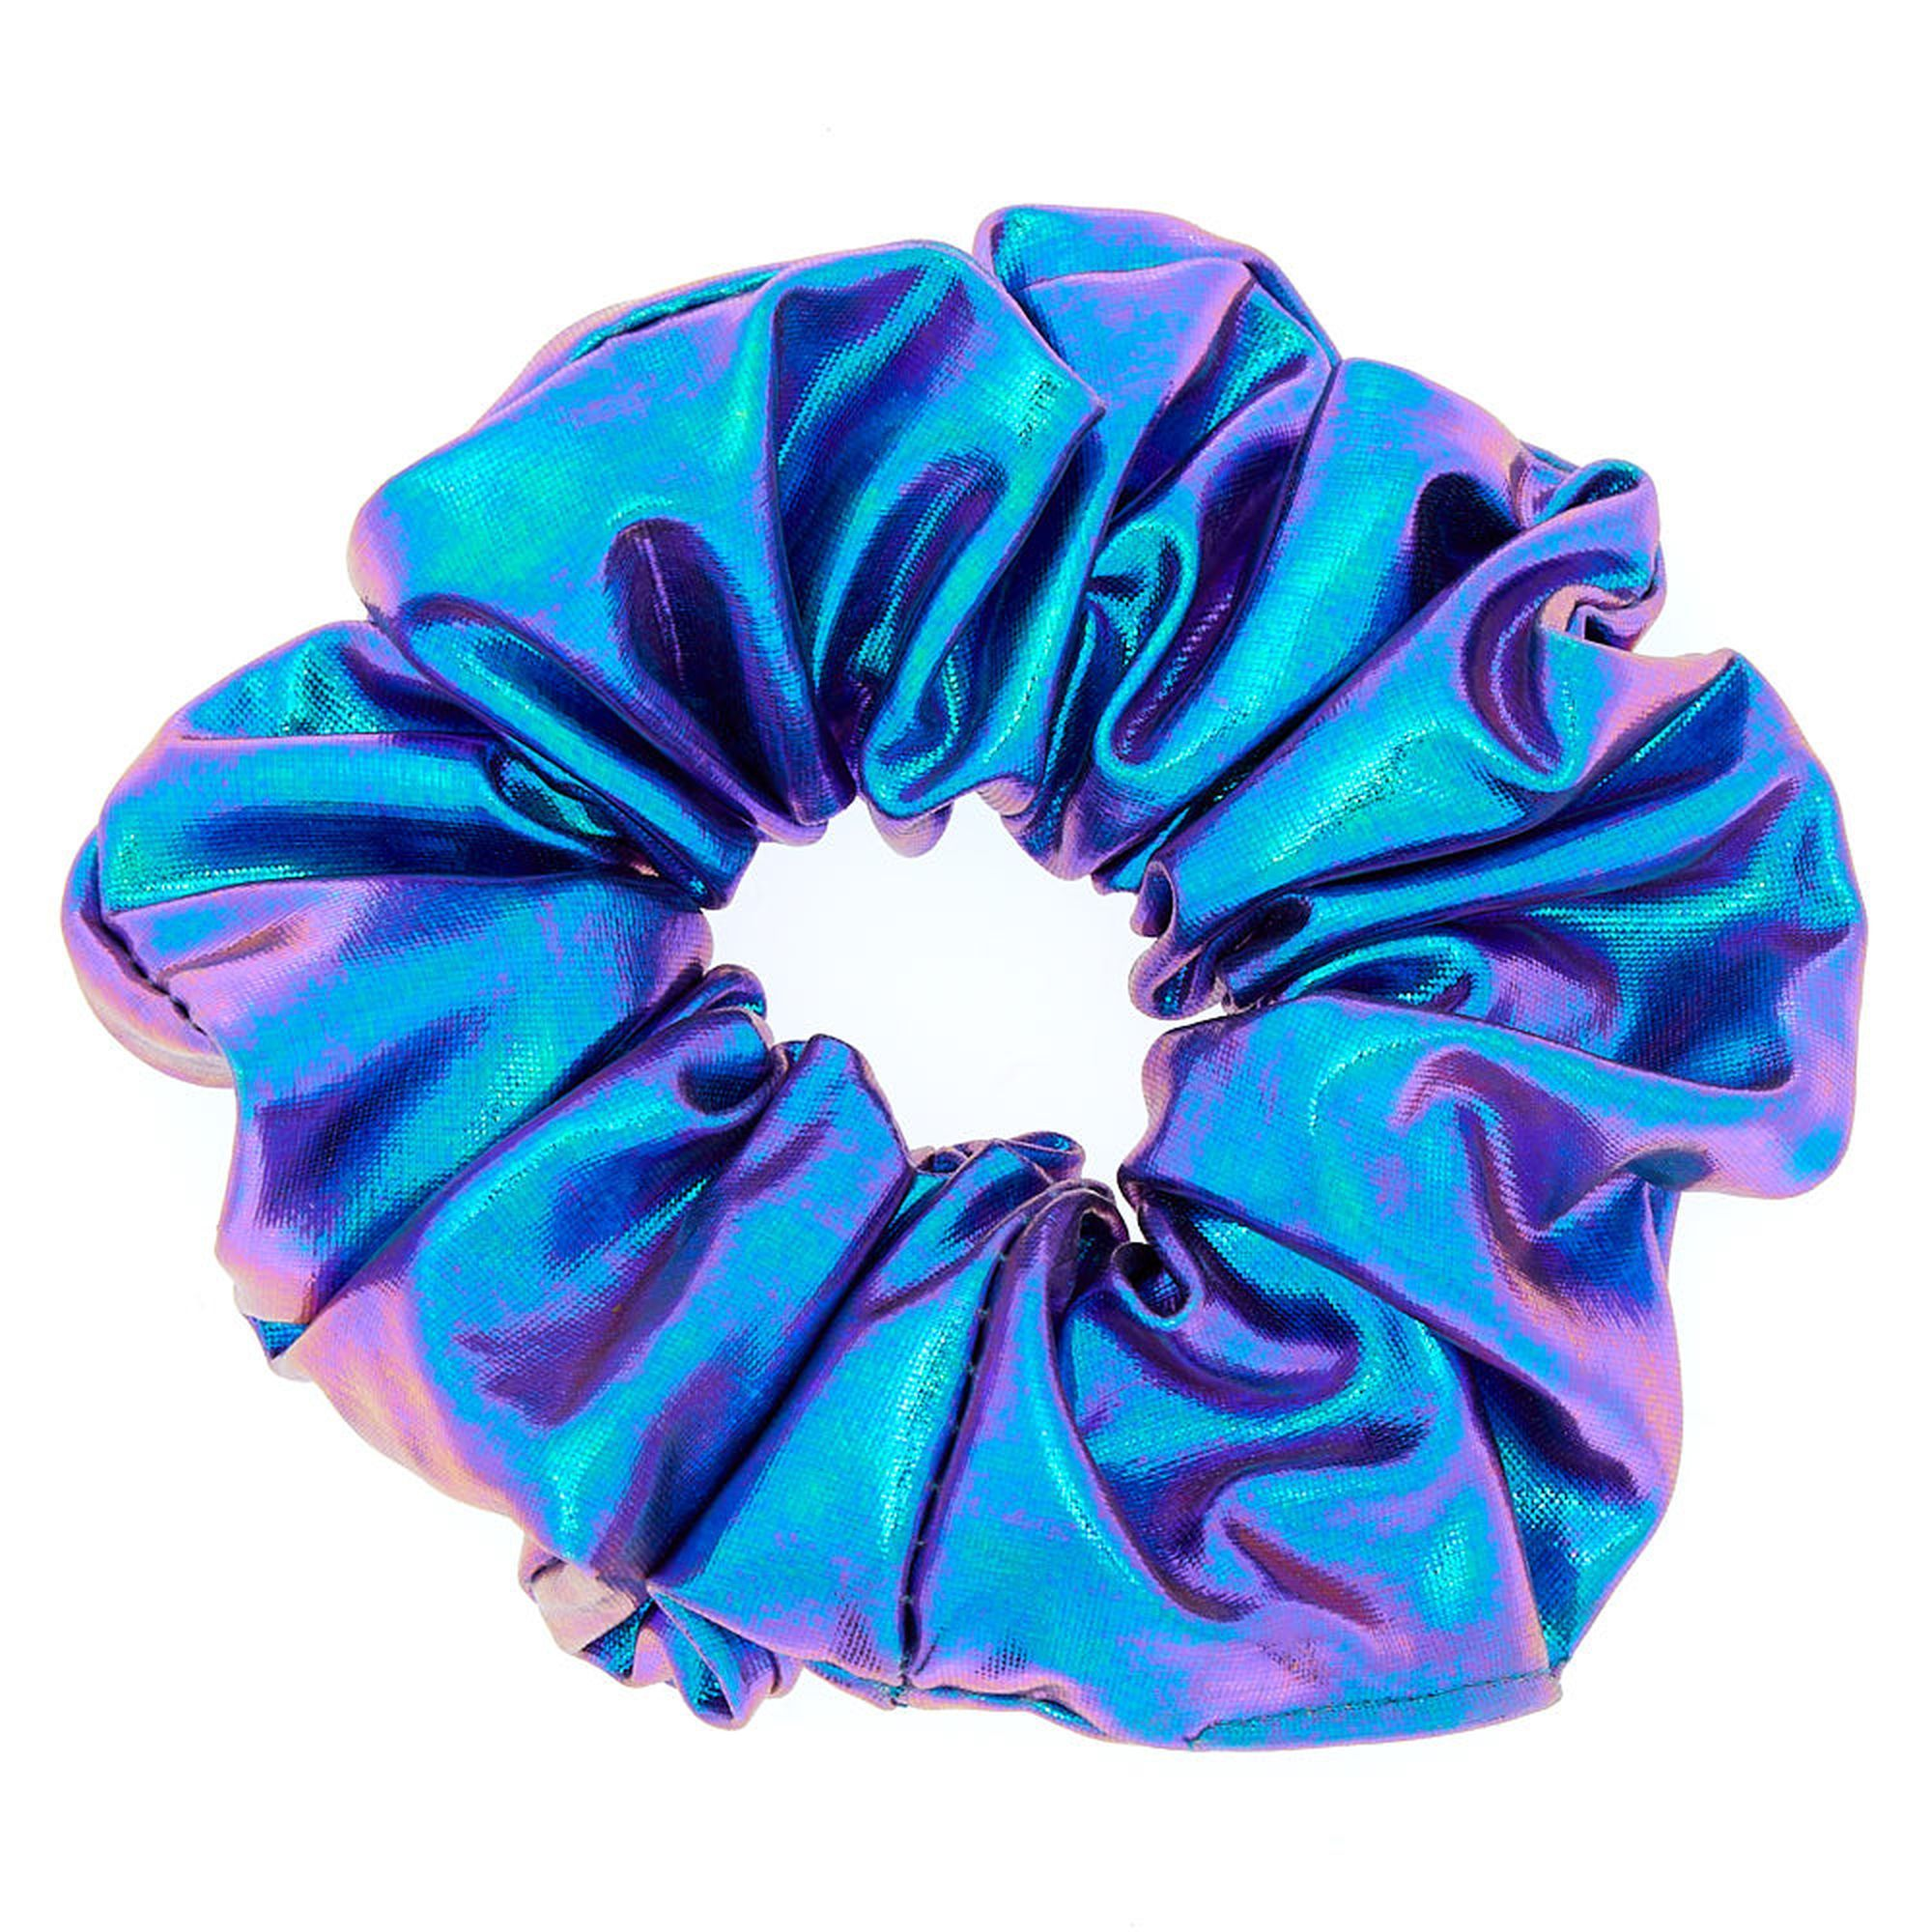 Medium Metallic Mermaid Hair Scrunchie - Purple